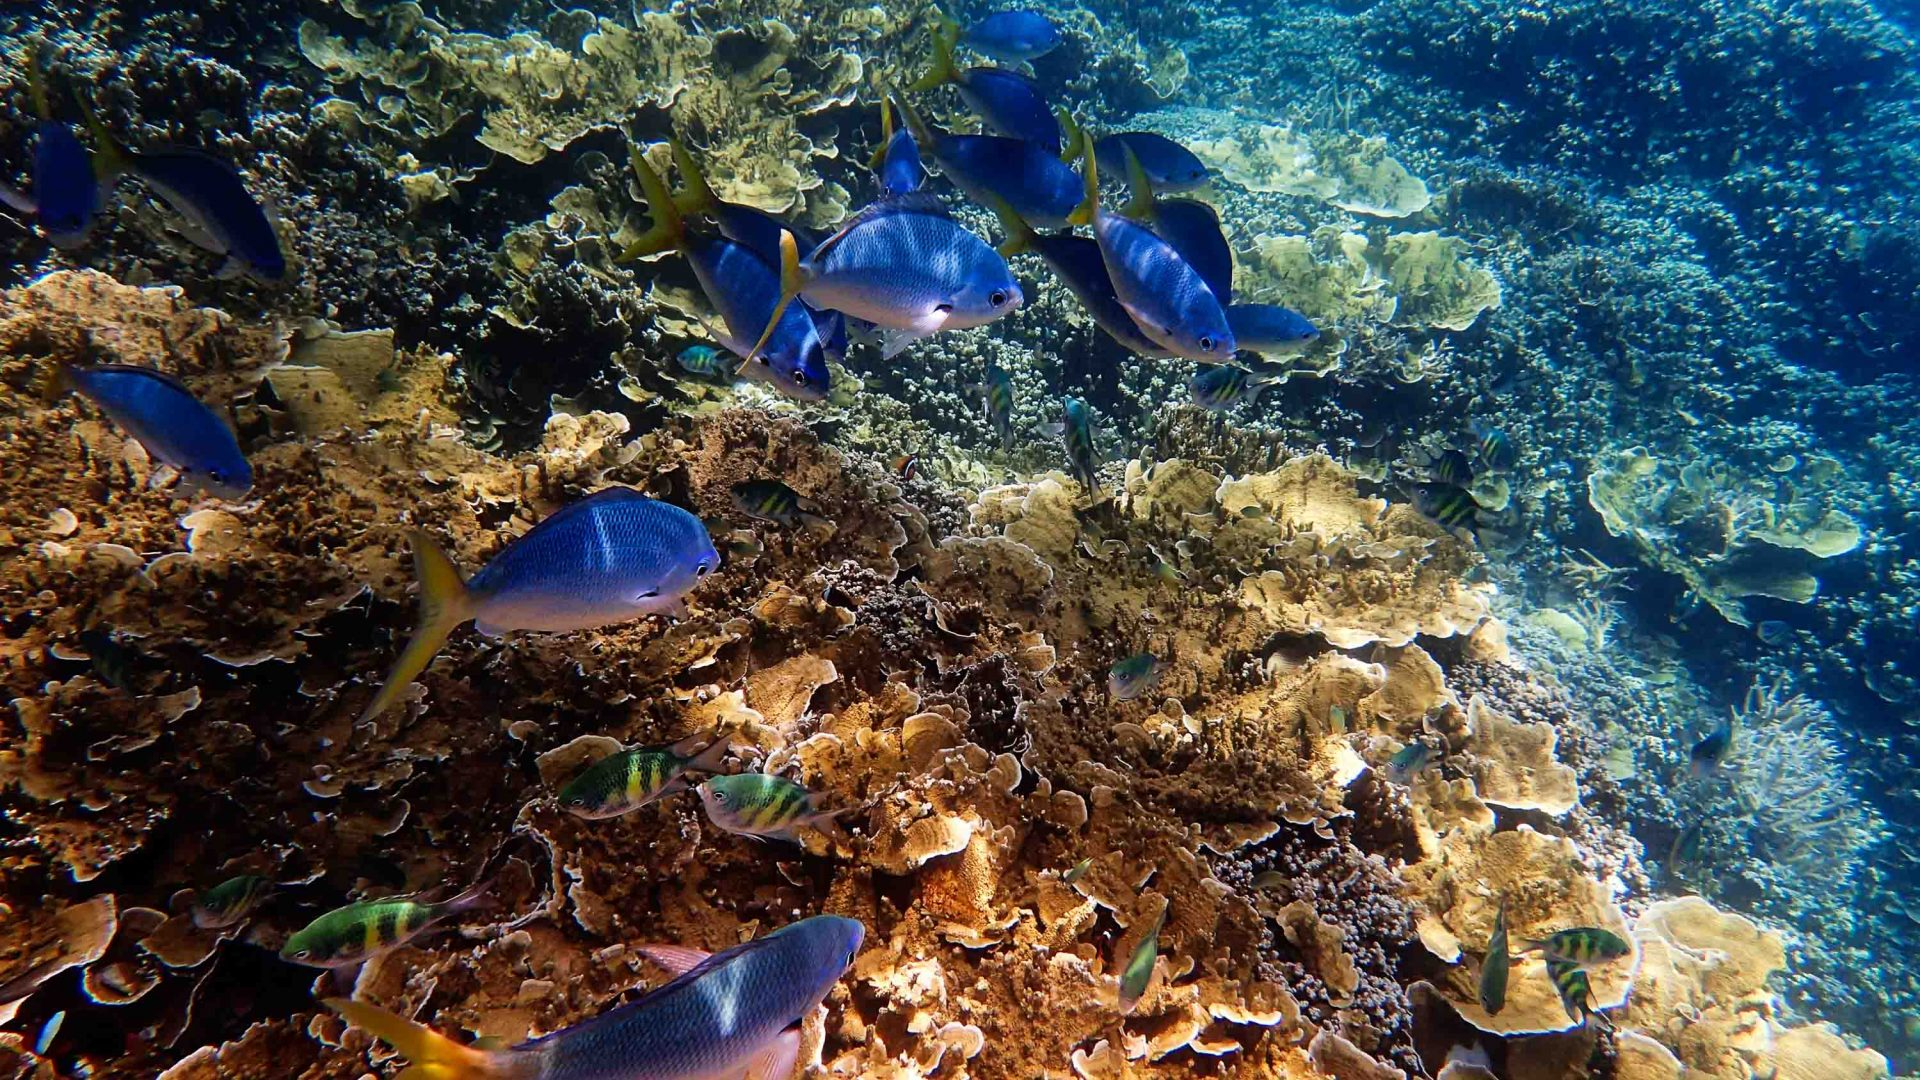 Vibrant blue fish at the Great Barrier Reef.